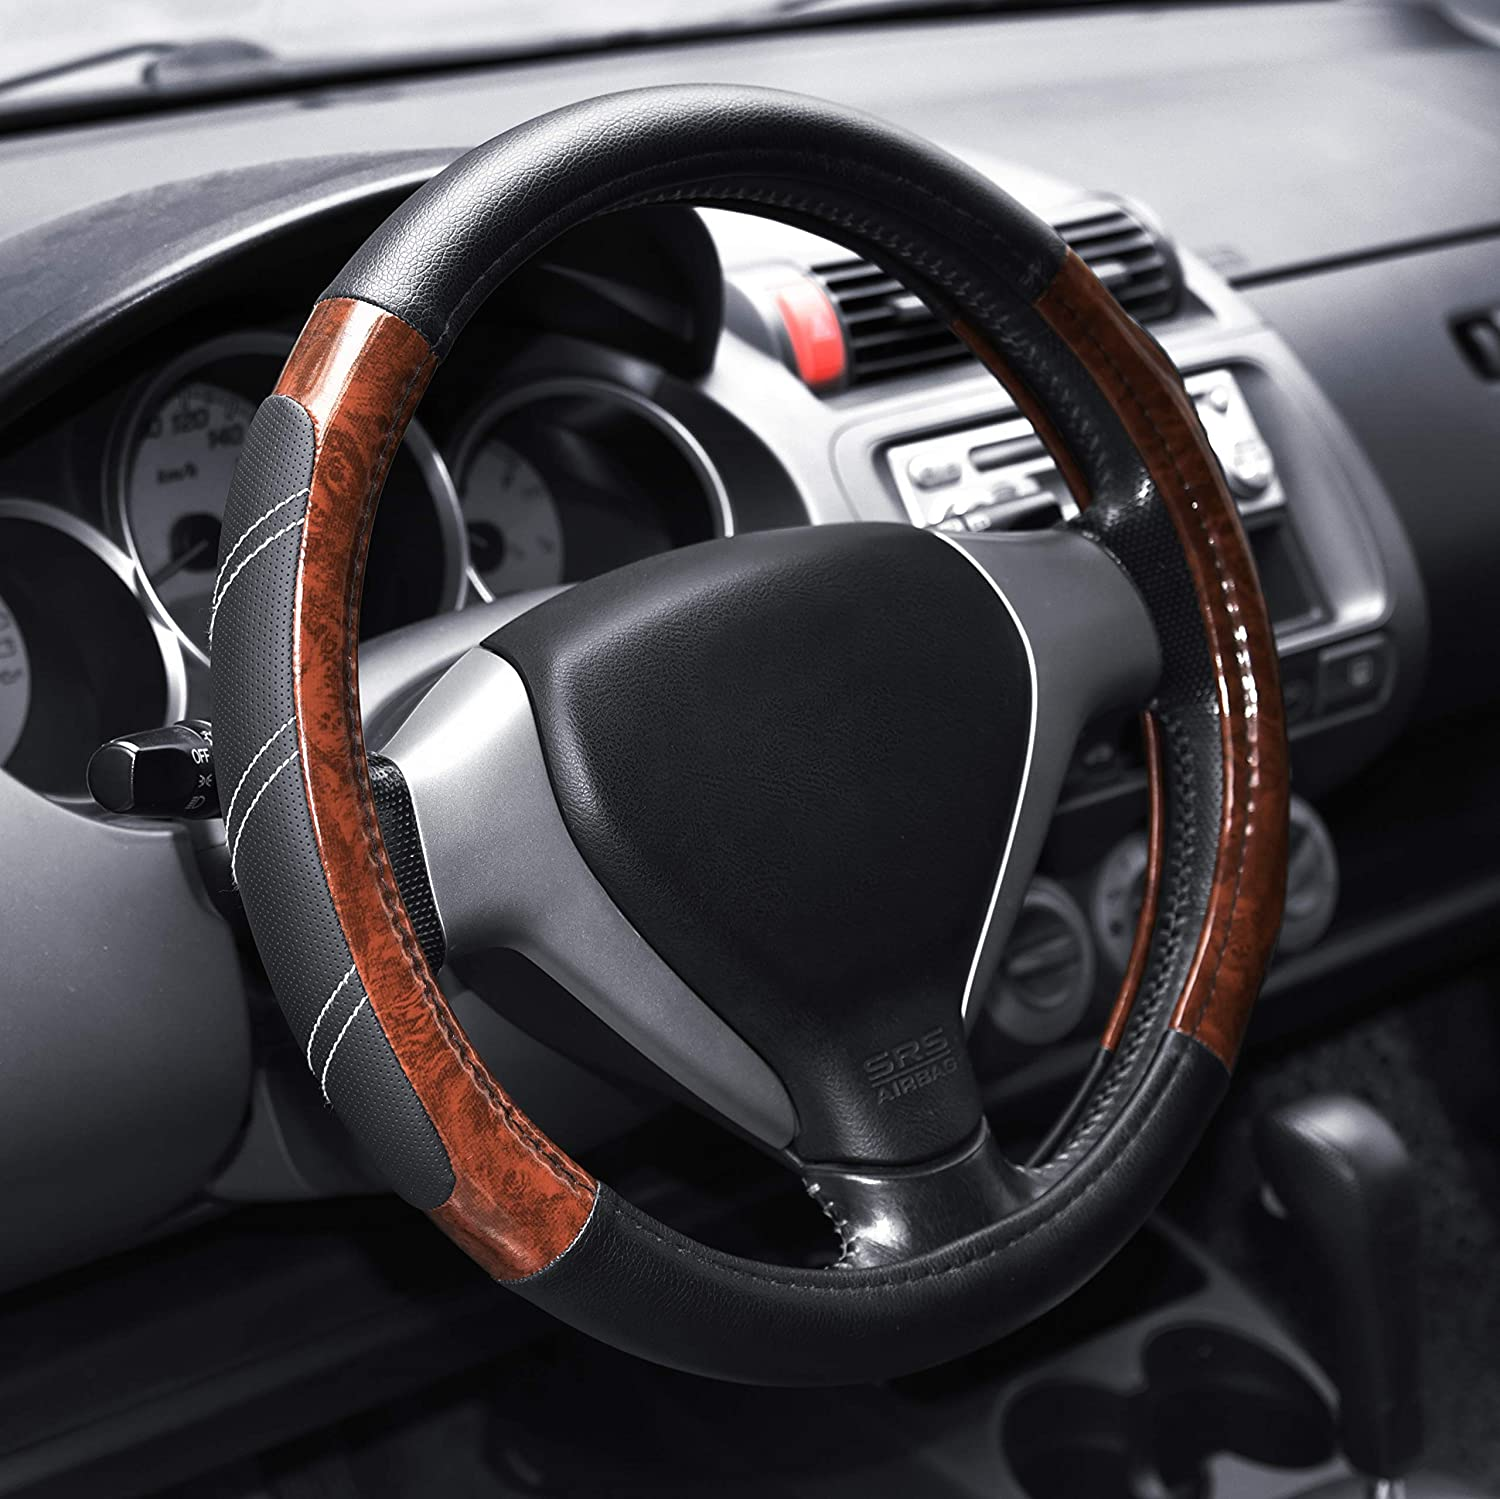 WOOD LEATHER Effect Steering Wheel Cover fits HONDA